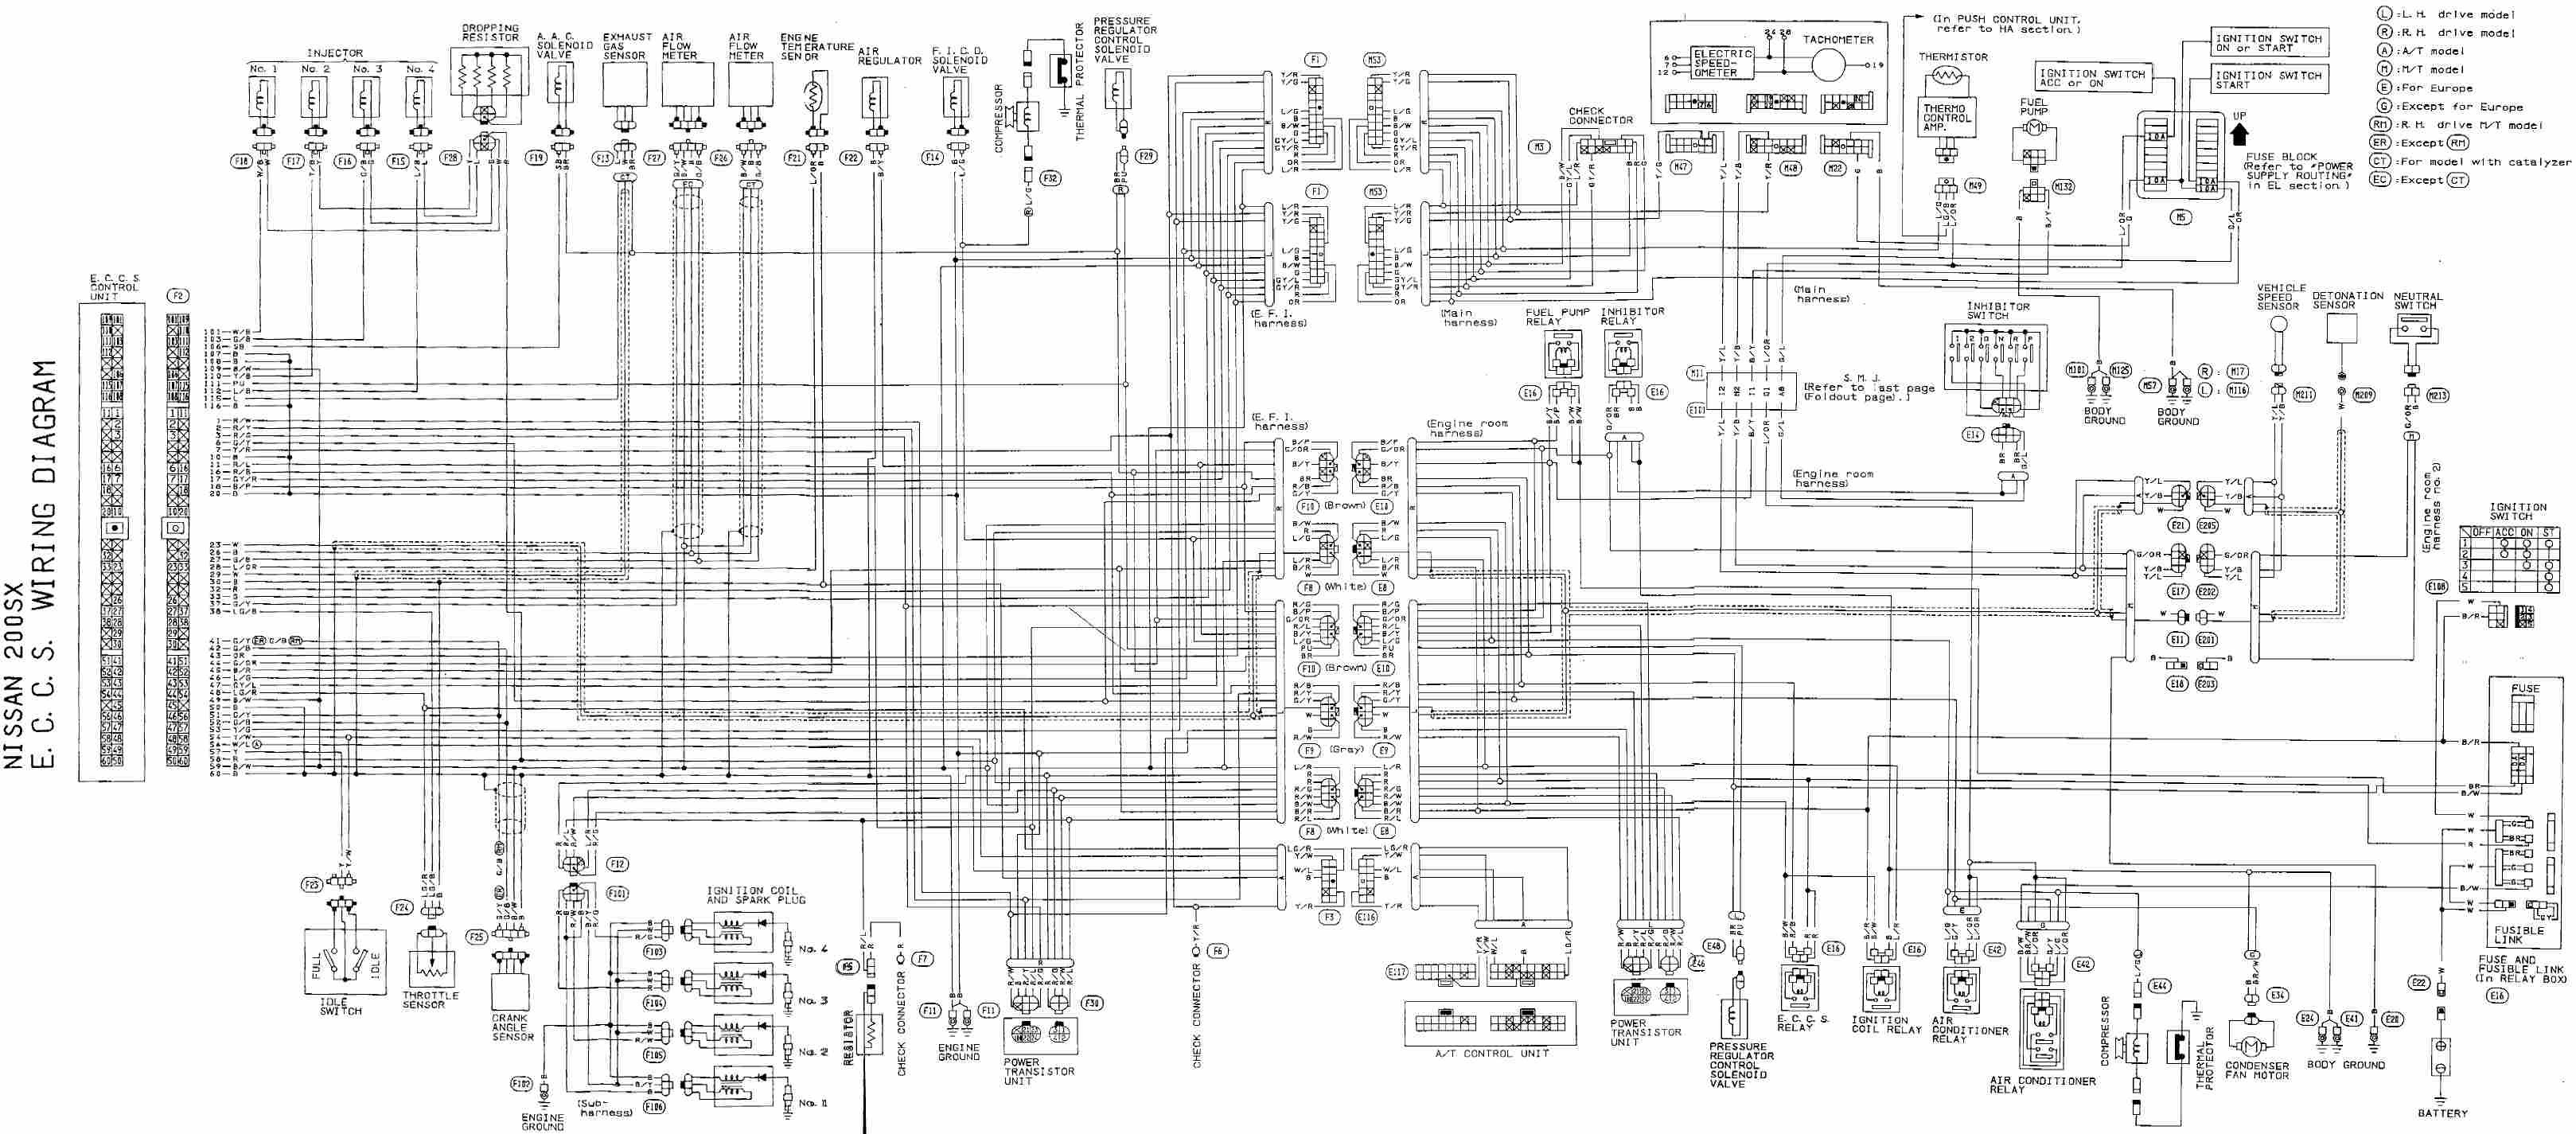 Nissan Micra Engine Diagram Repair Guides Wiring Diagrams Autozone Entrancing Nissan Afif Of Nissan Micra Engine Diagram